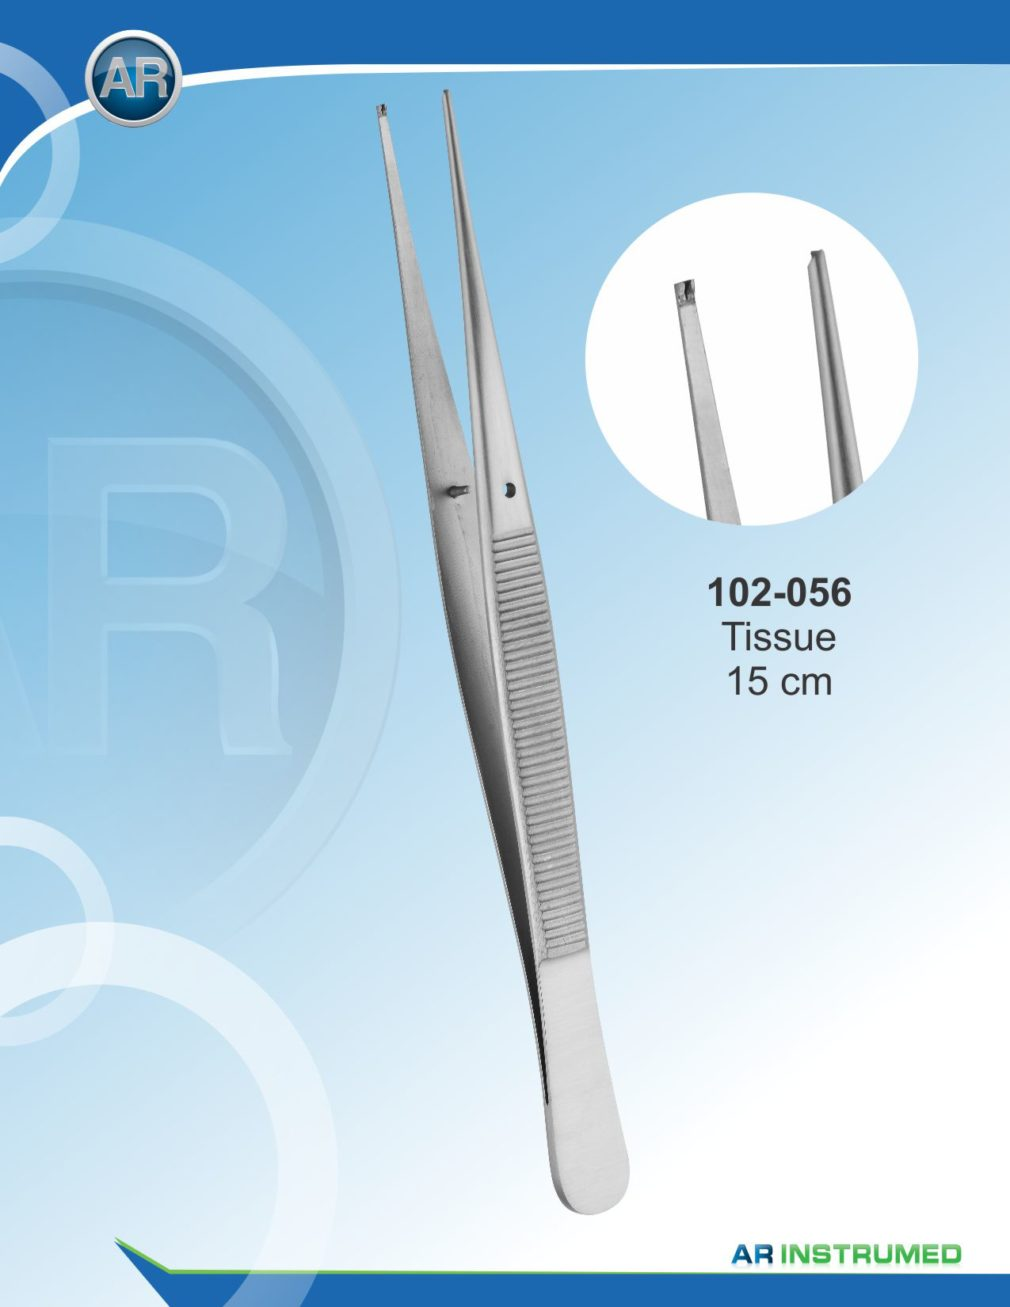 Tissue Forceps 15 cm Teeth 1×2 – Tweezers